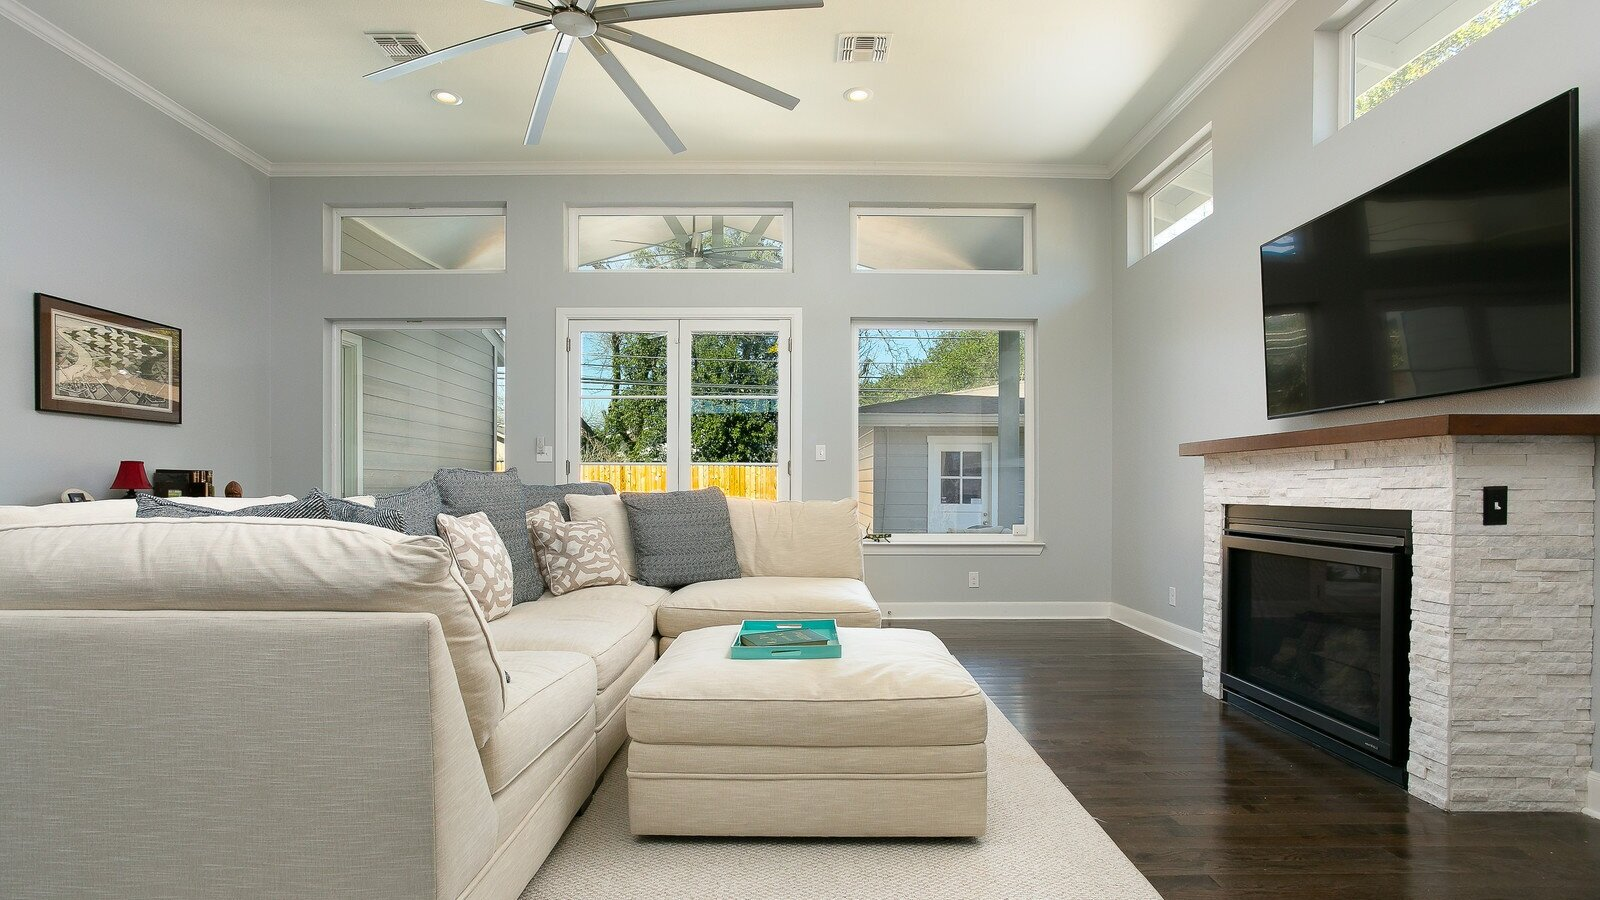 sunrise_restoration_alamo_heights_living_room_addition_OU.jpg